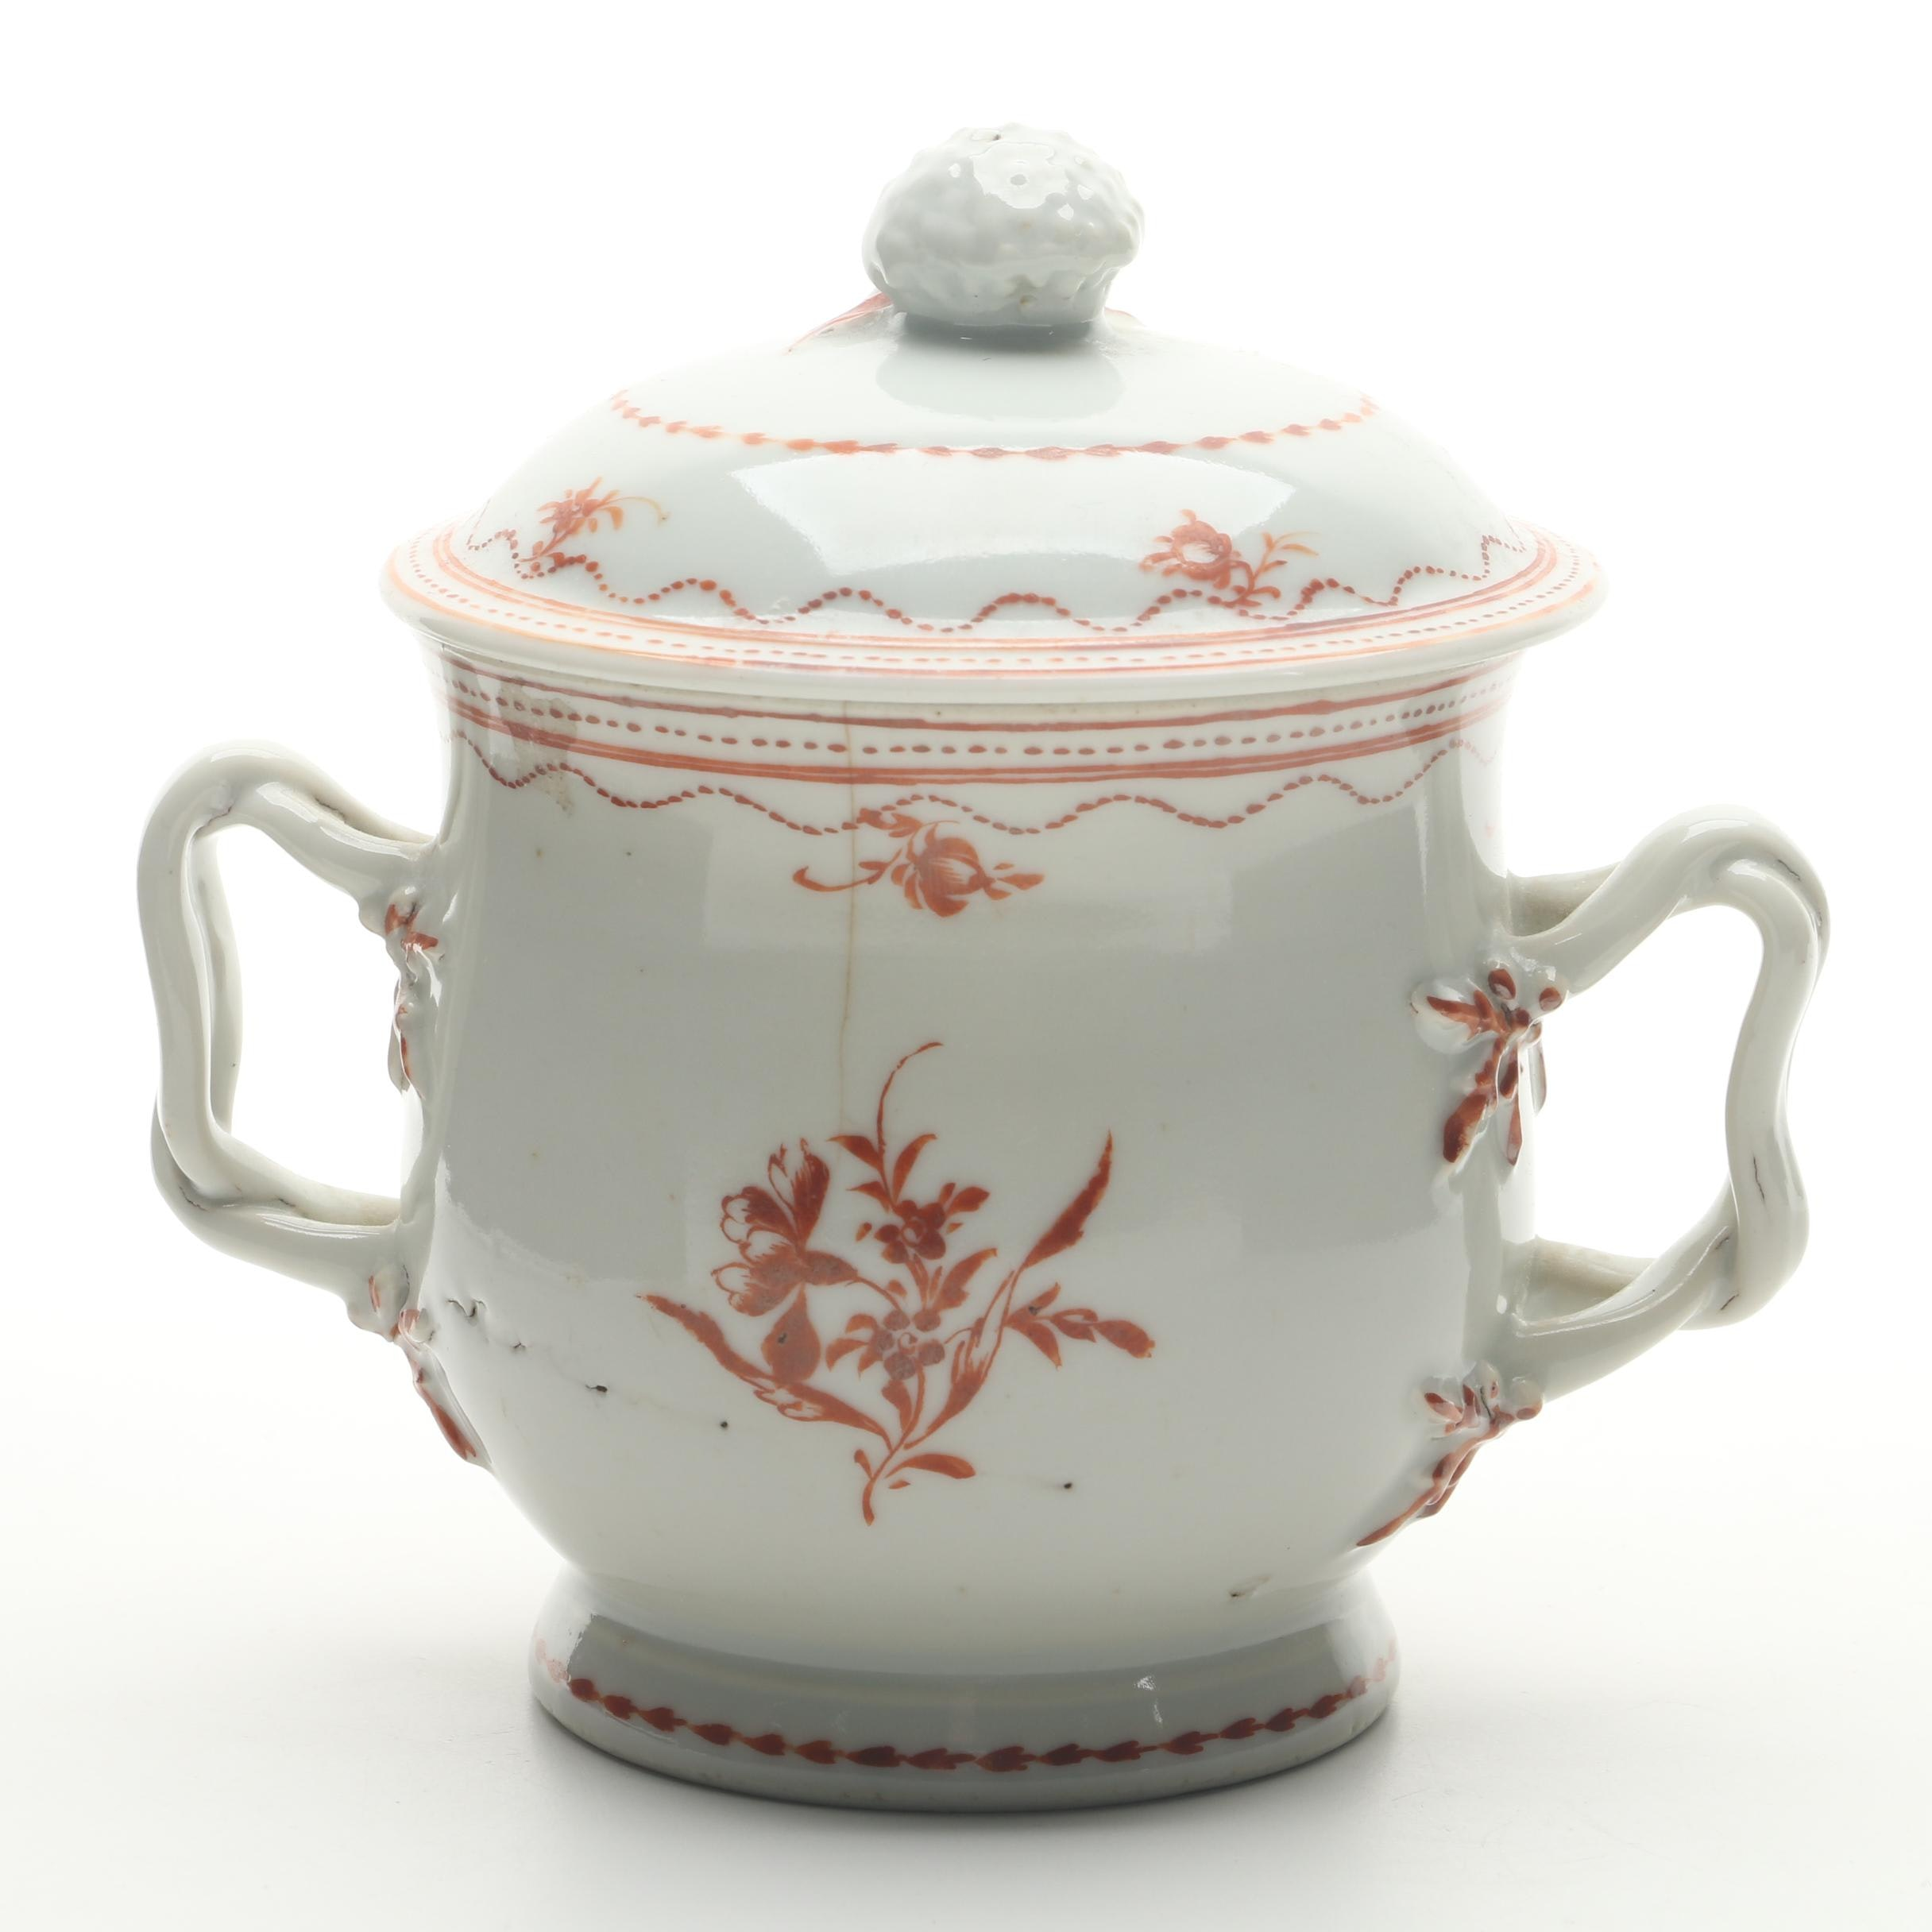 Chinese Export Porcelain Lidded Jar circa 1790-1800